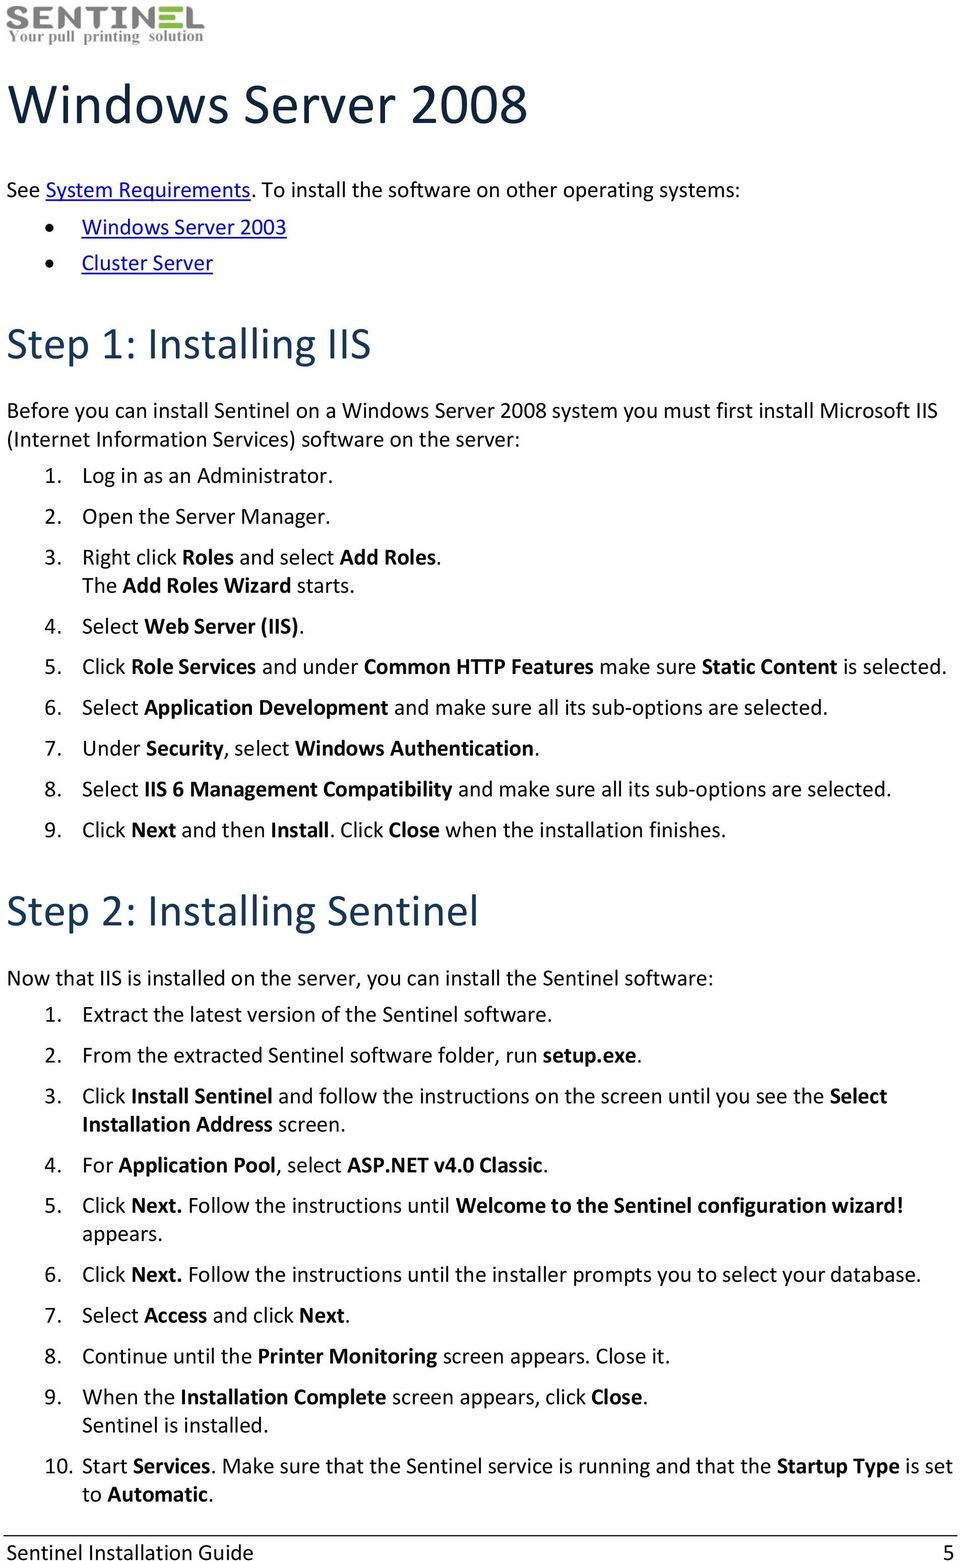 Microsoft IIS (Internet Information Services) software on the server: 1. Log in as an Administrator. 2. Open the Server Manager. 3. Right click Roles and select Add Roles. The Add Roles Wizard starts.